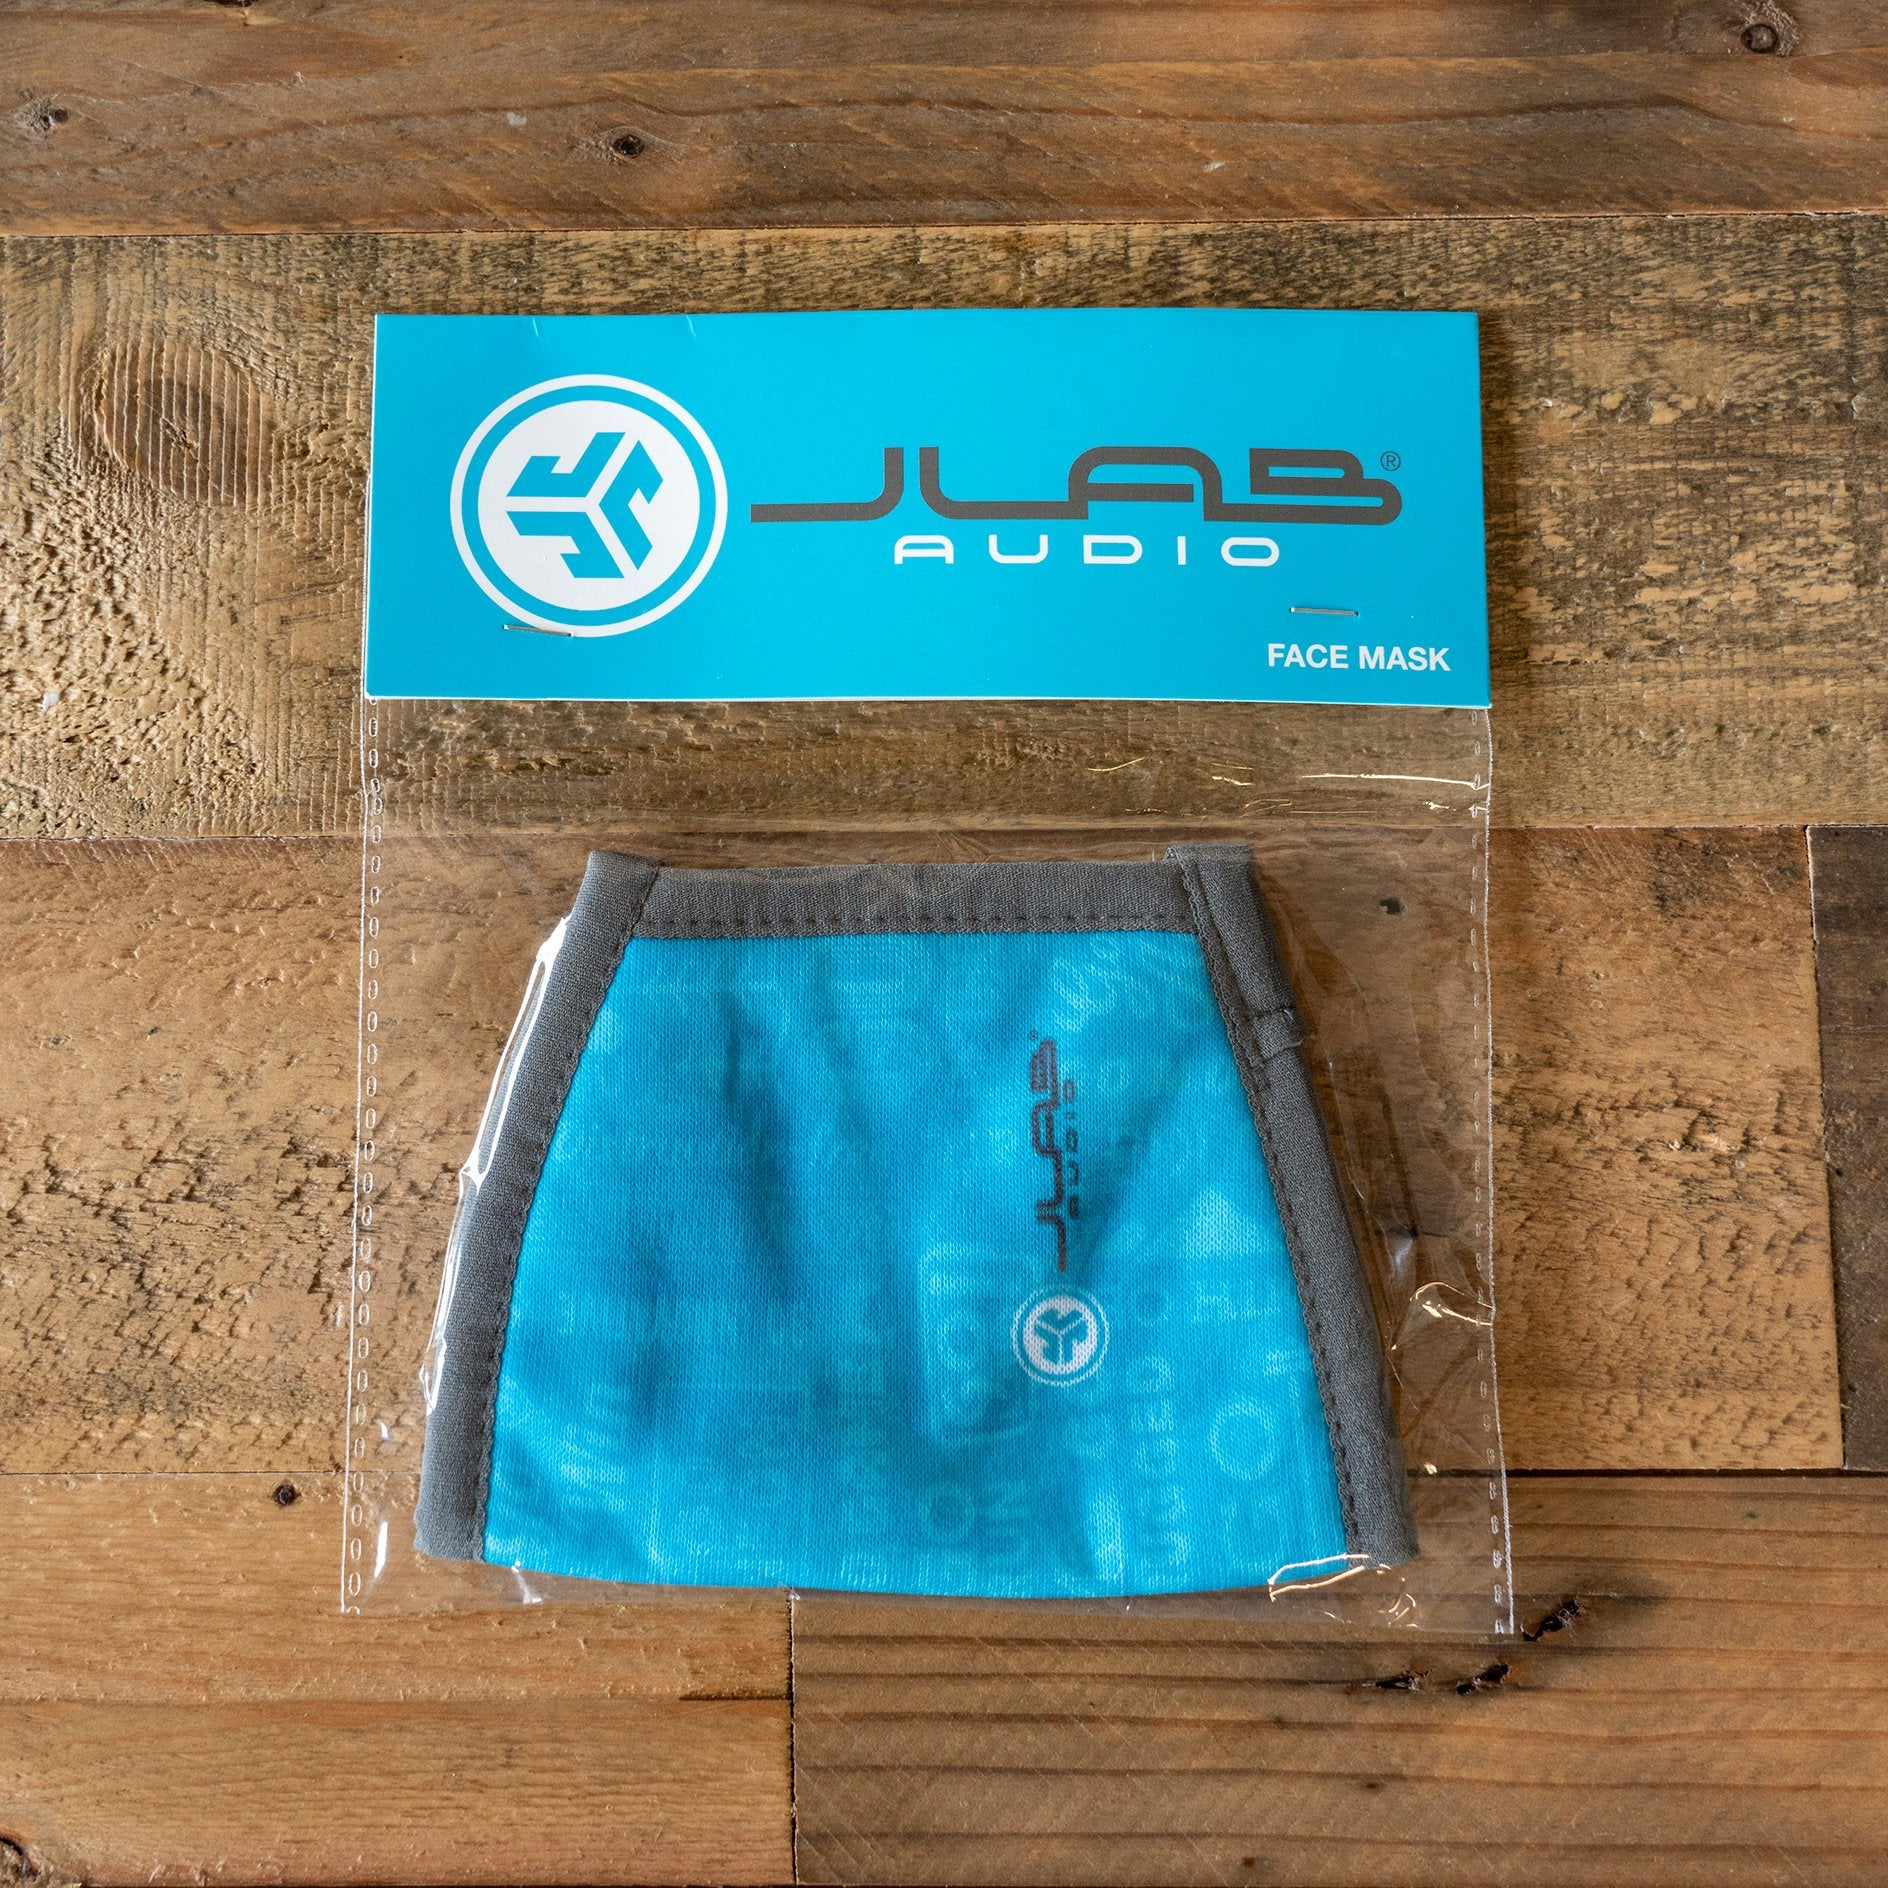 Jlab Audio Face Mask With Purchase